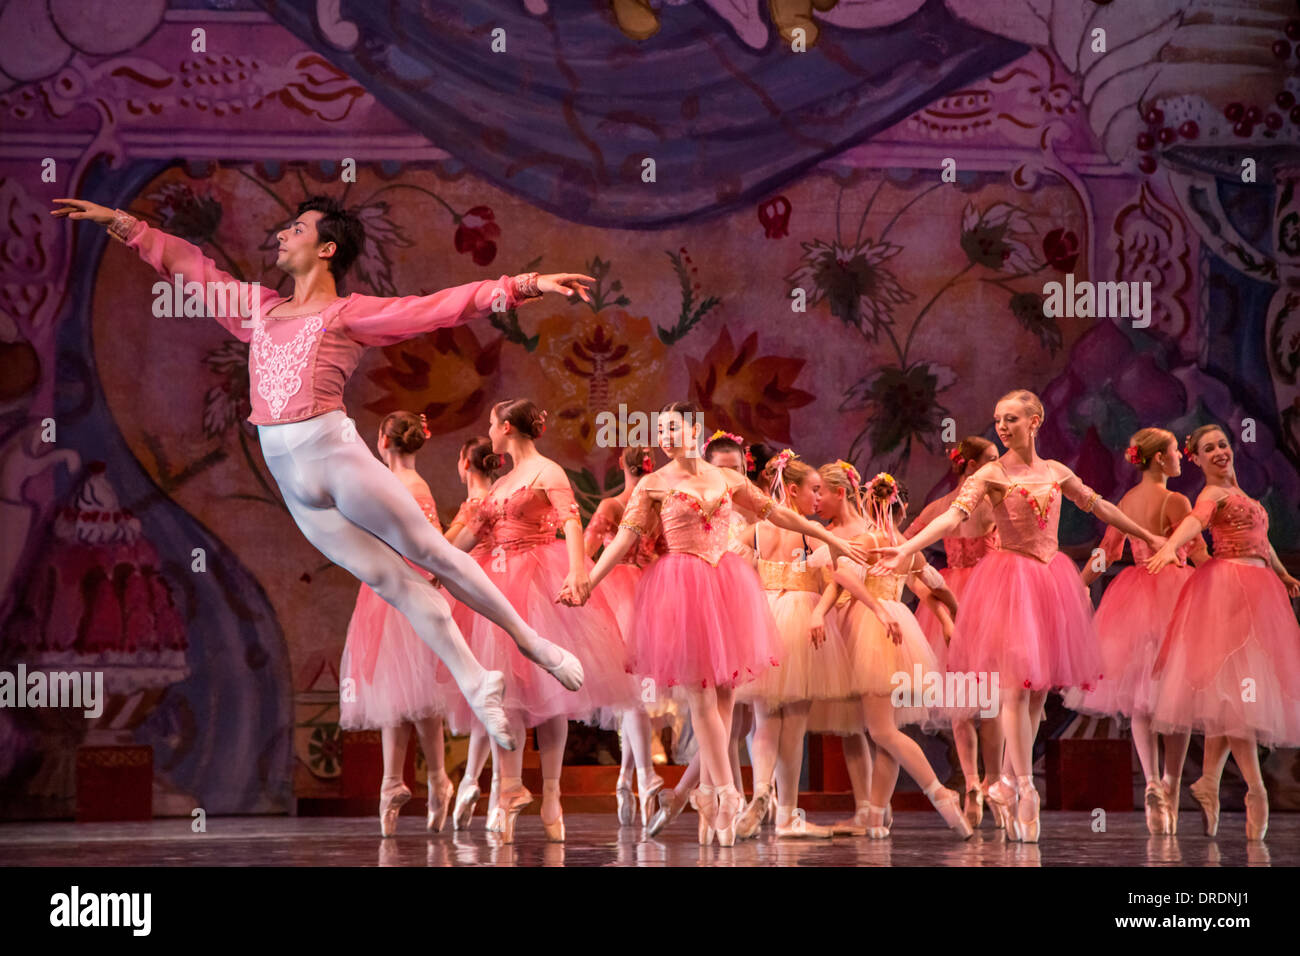 The Nutcracker, Act II, Waltz of the Flowers - Stock Image